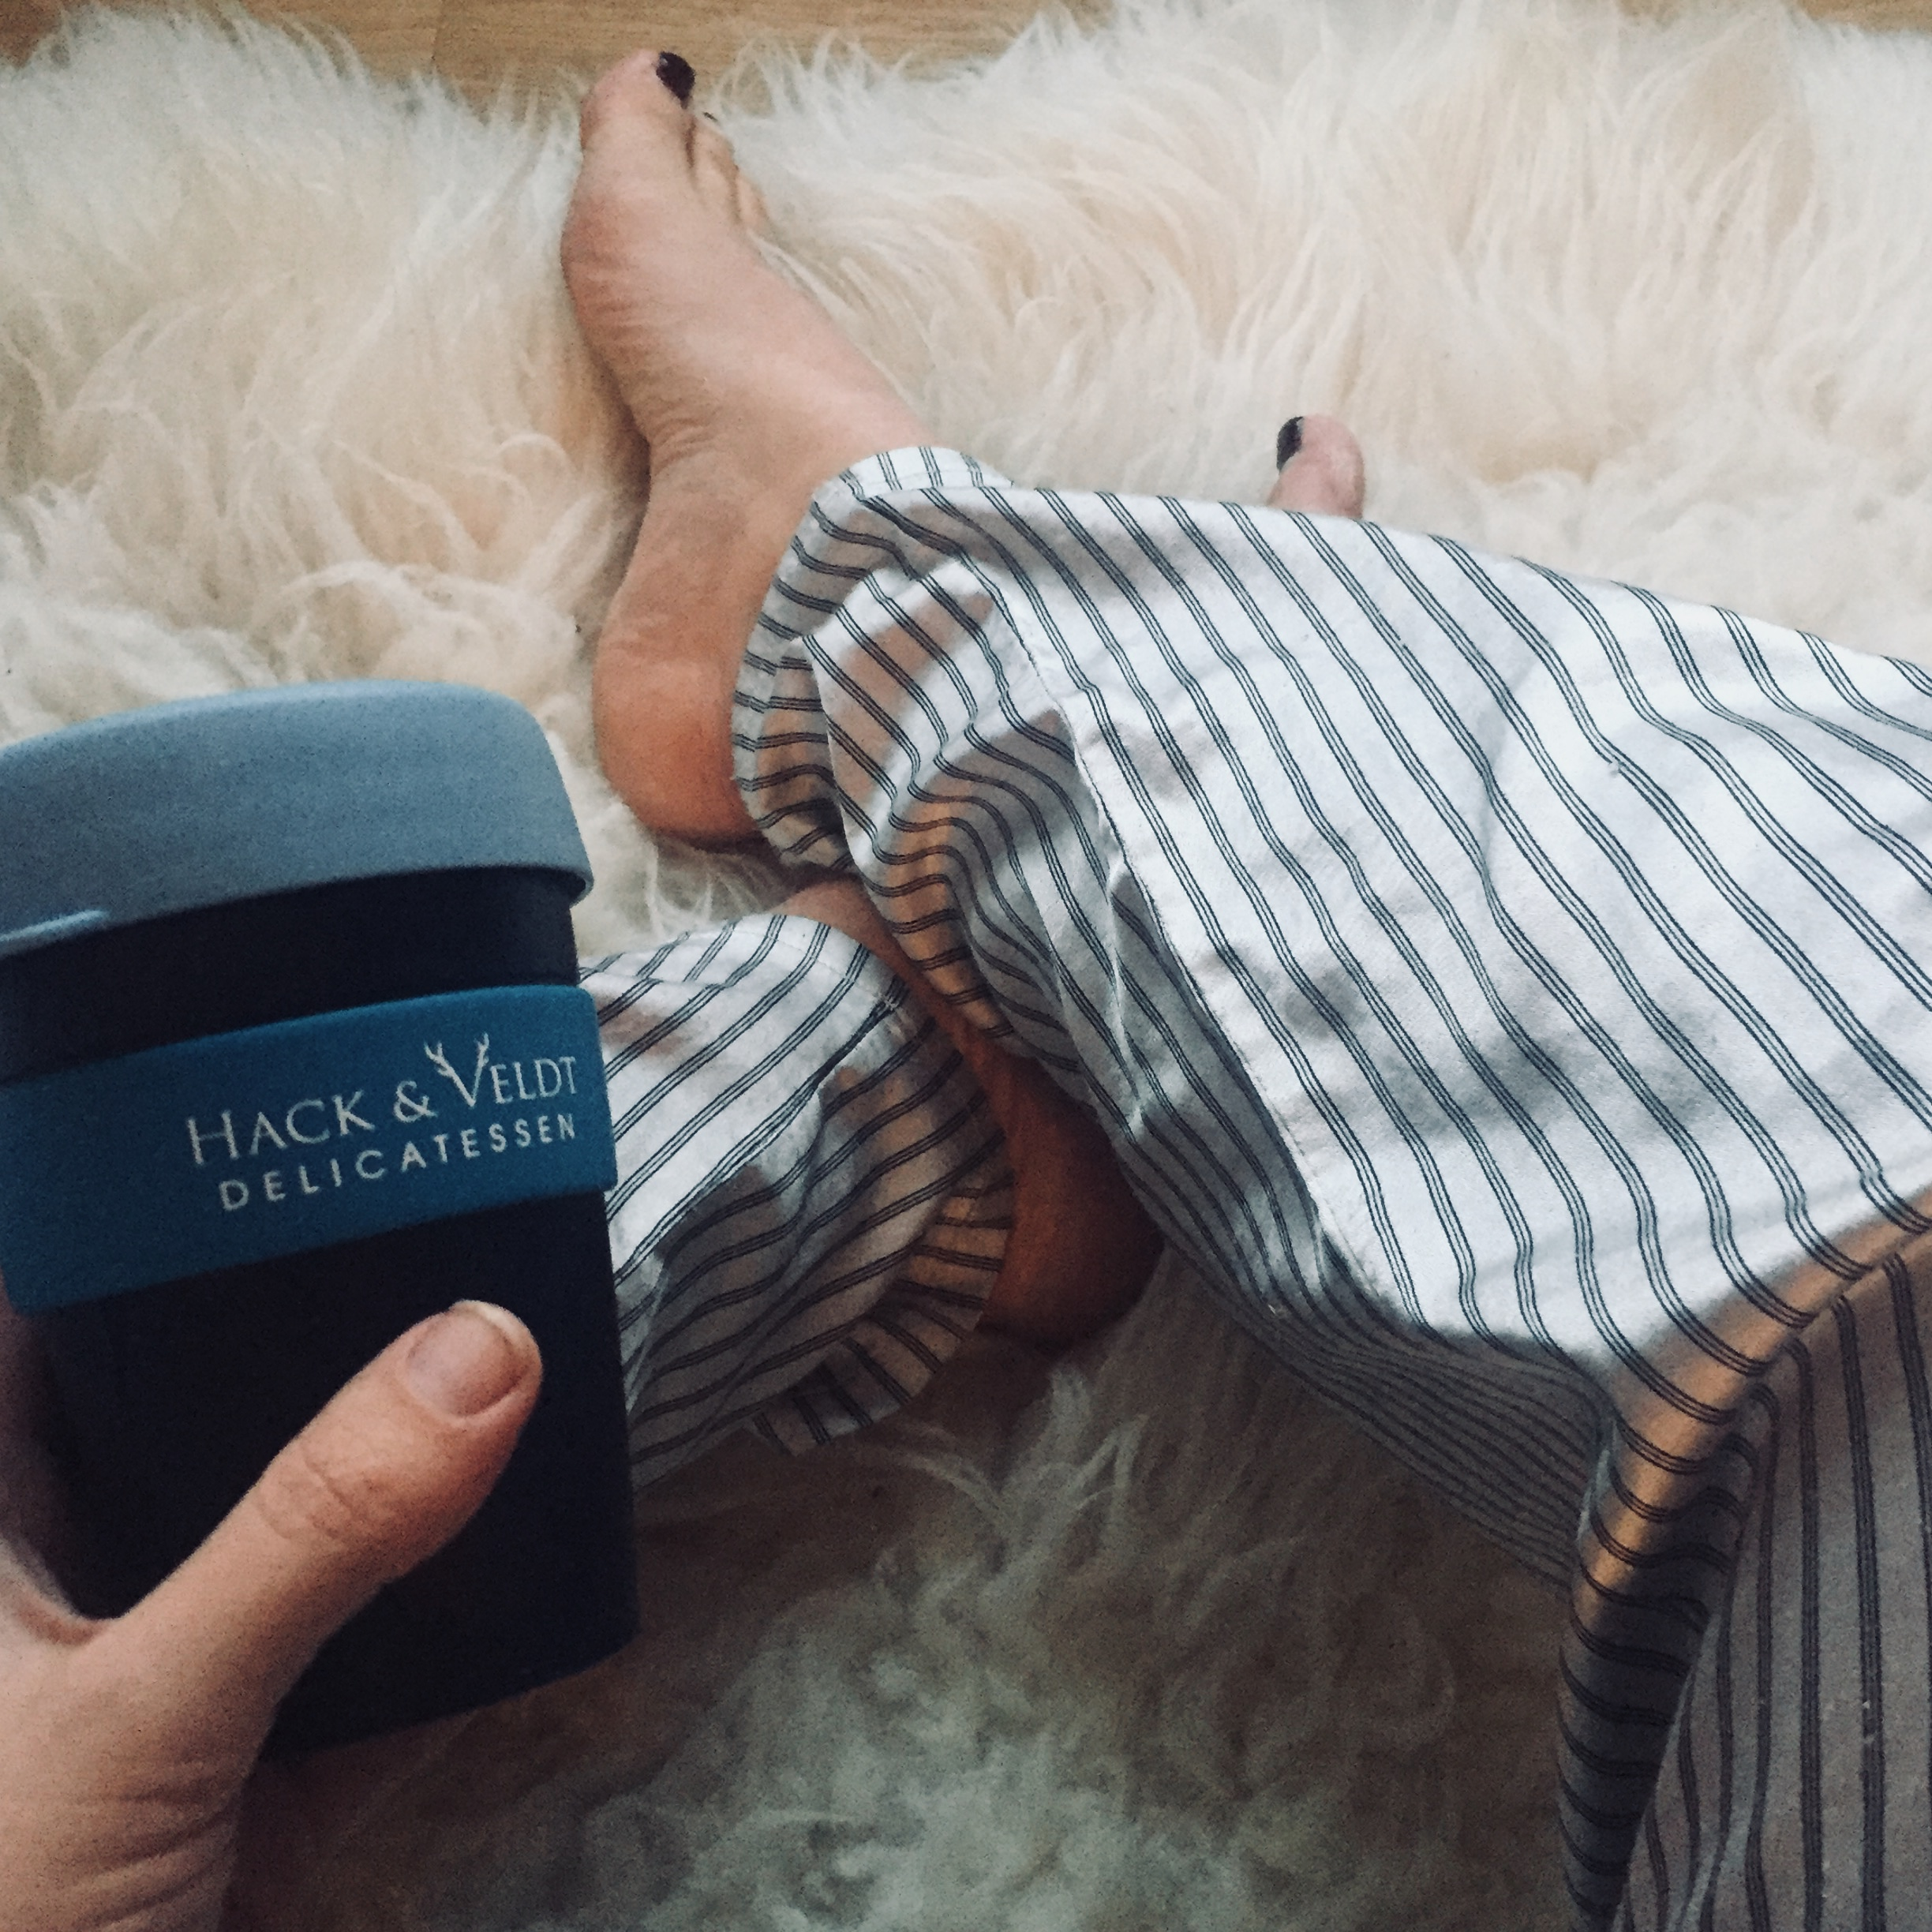 Cosy: Caffeine and stripes on a lazy Sunday morning